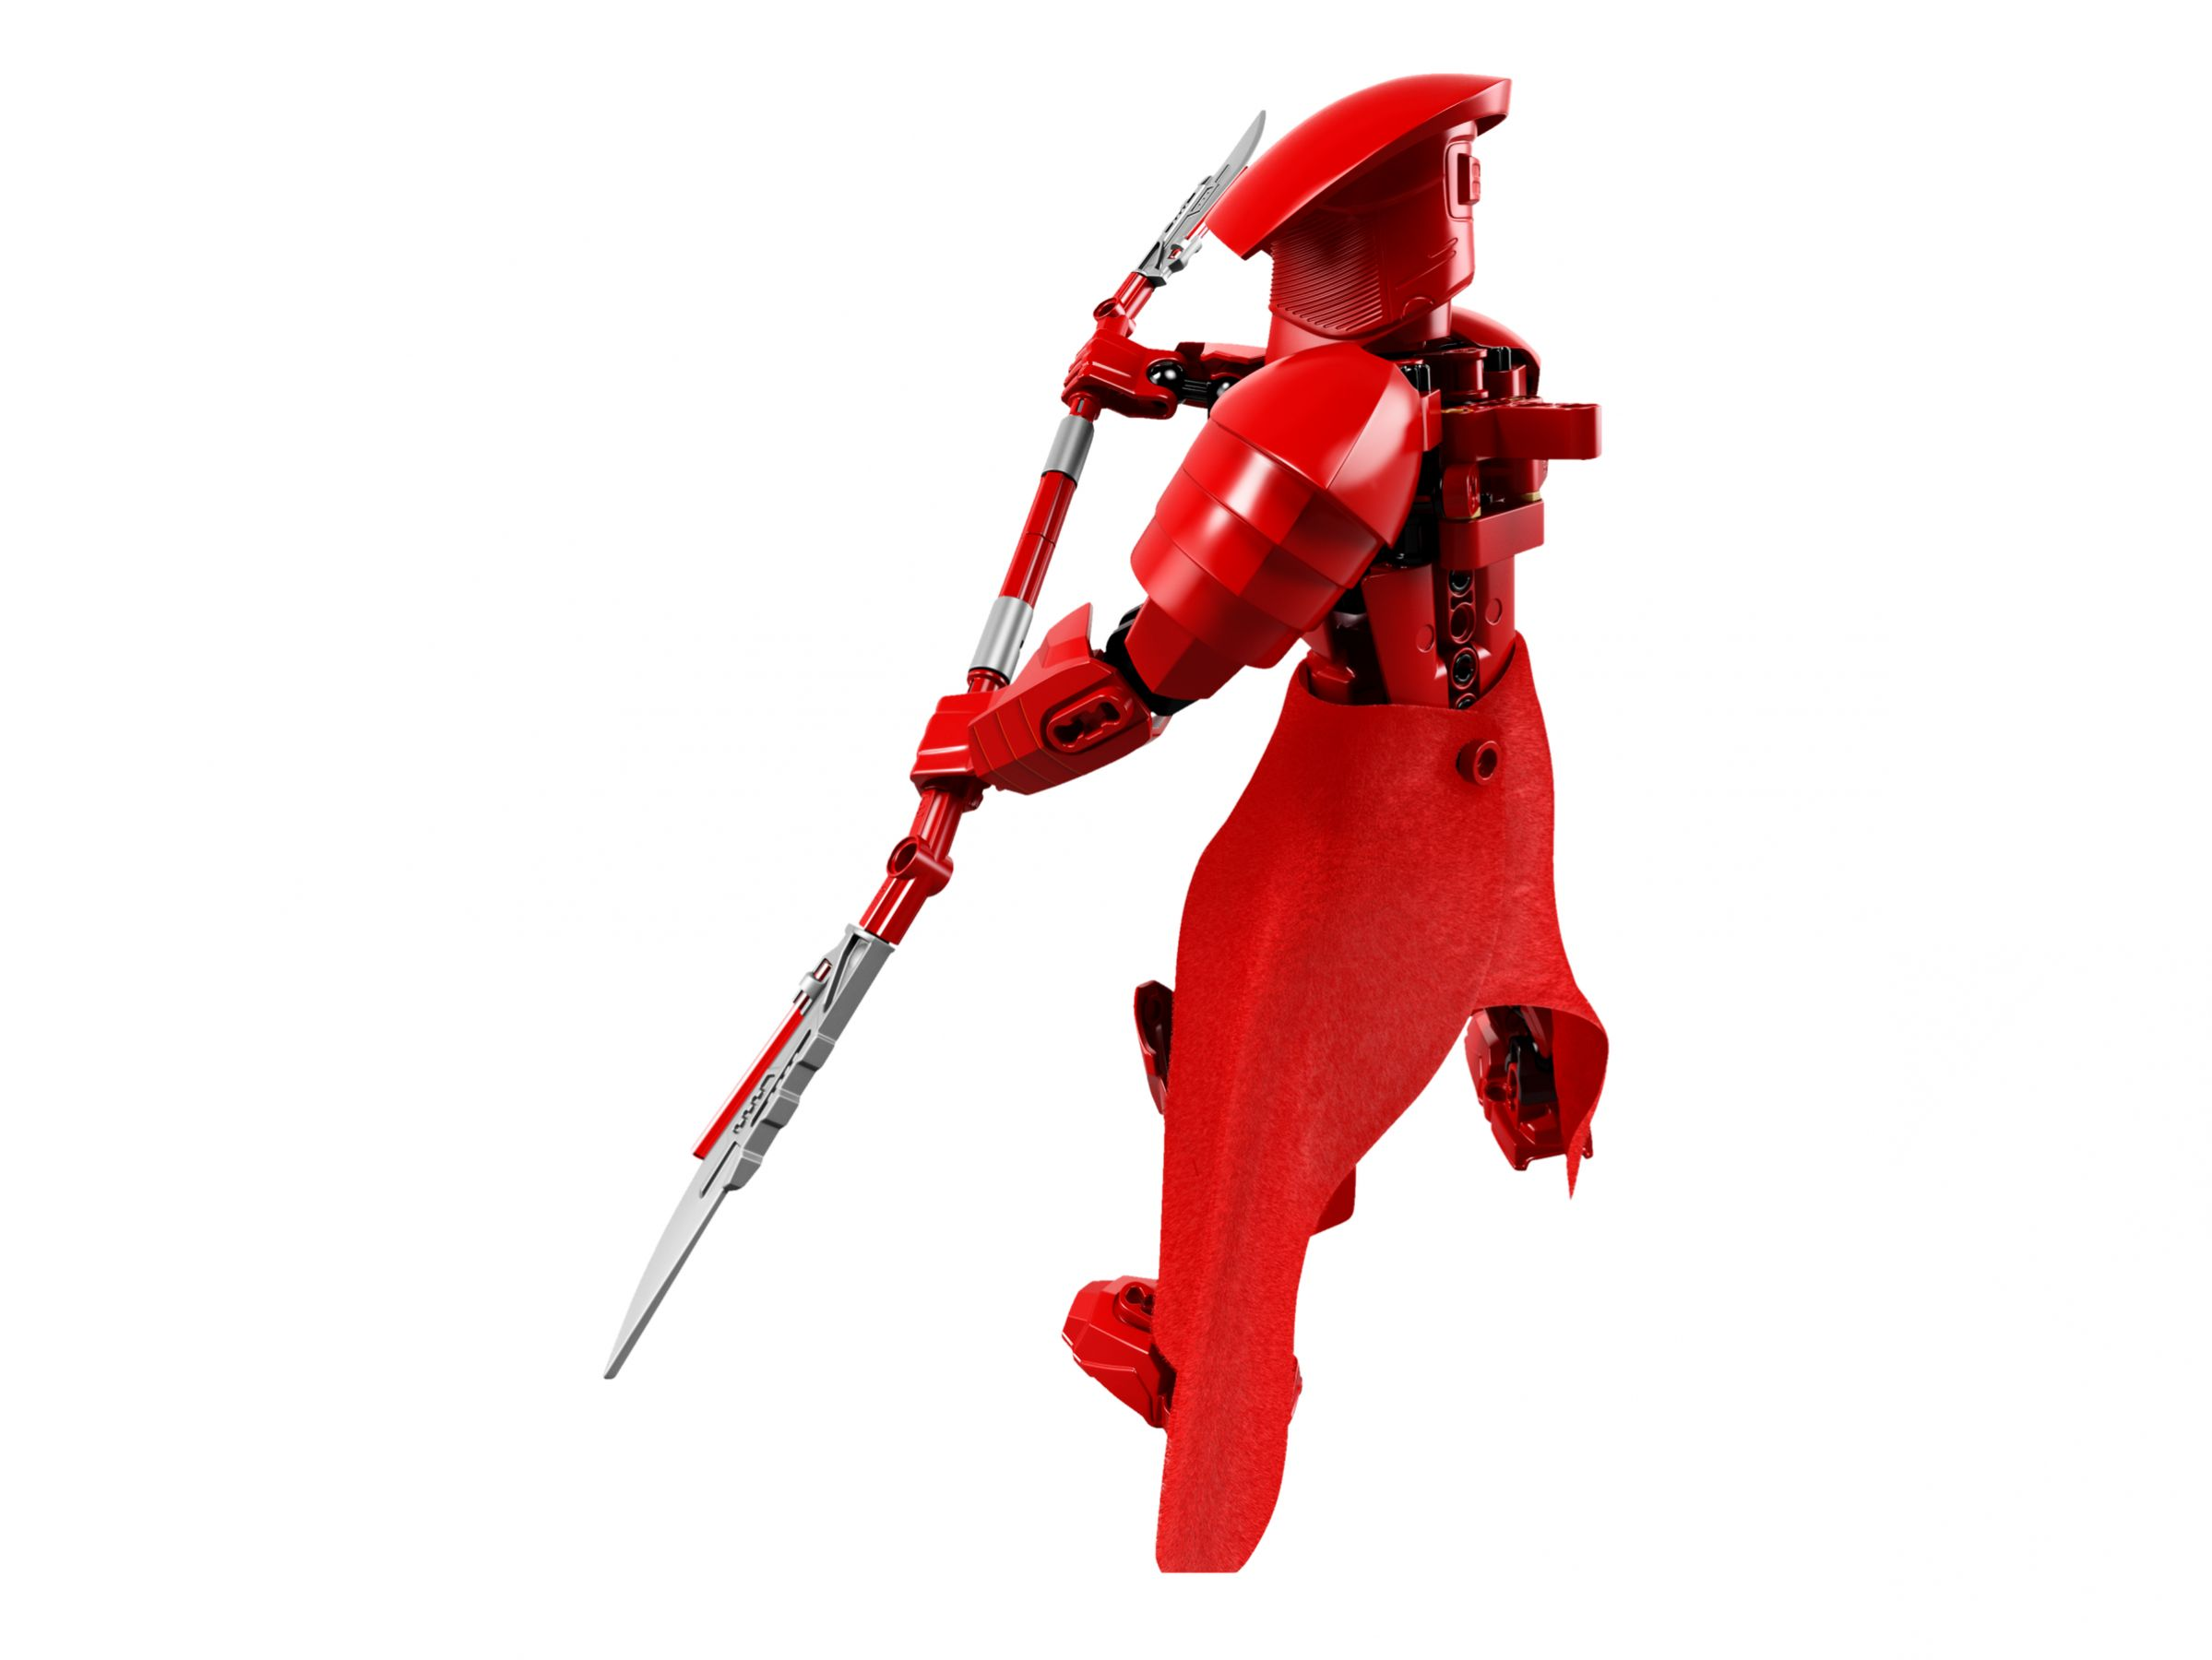 LEGO Star Wars Buildable Figures 75529 Elite Praetorian Guard LEGO_75529_alt3.jpg